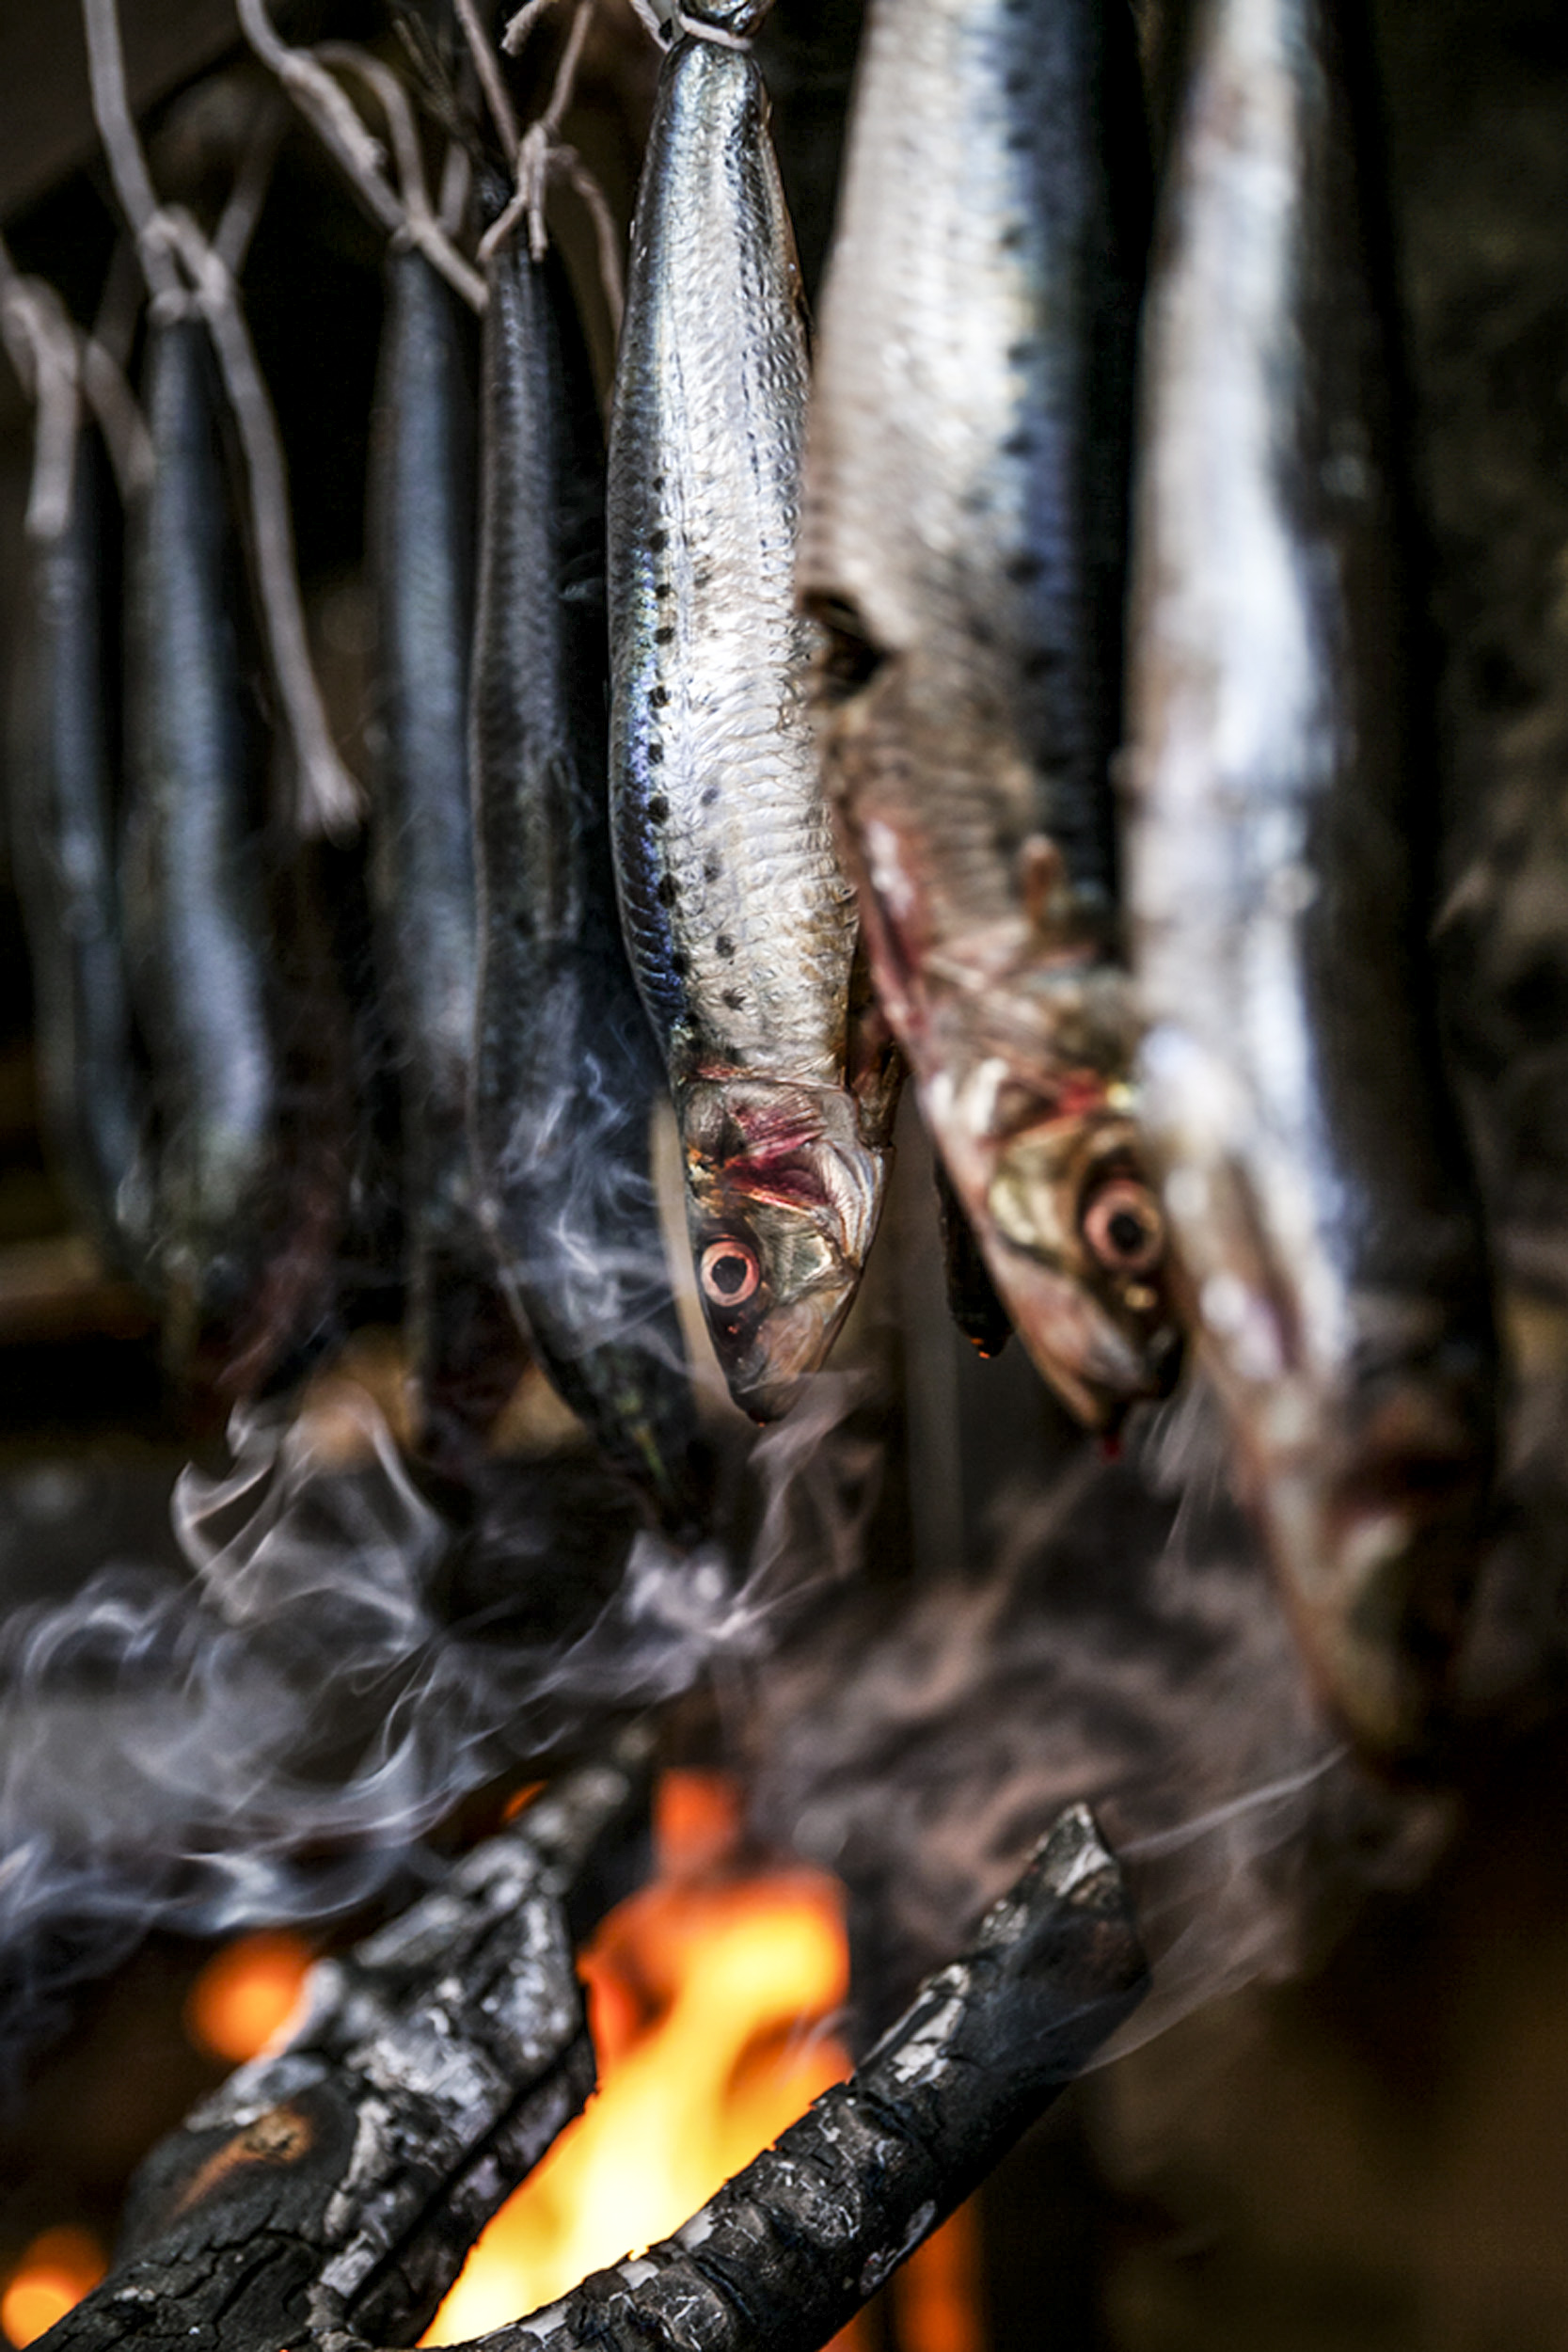 Katie Newburn | San Francisco Bay Area Food and Lifestyle Photographer | Smoking Fish